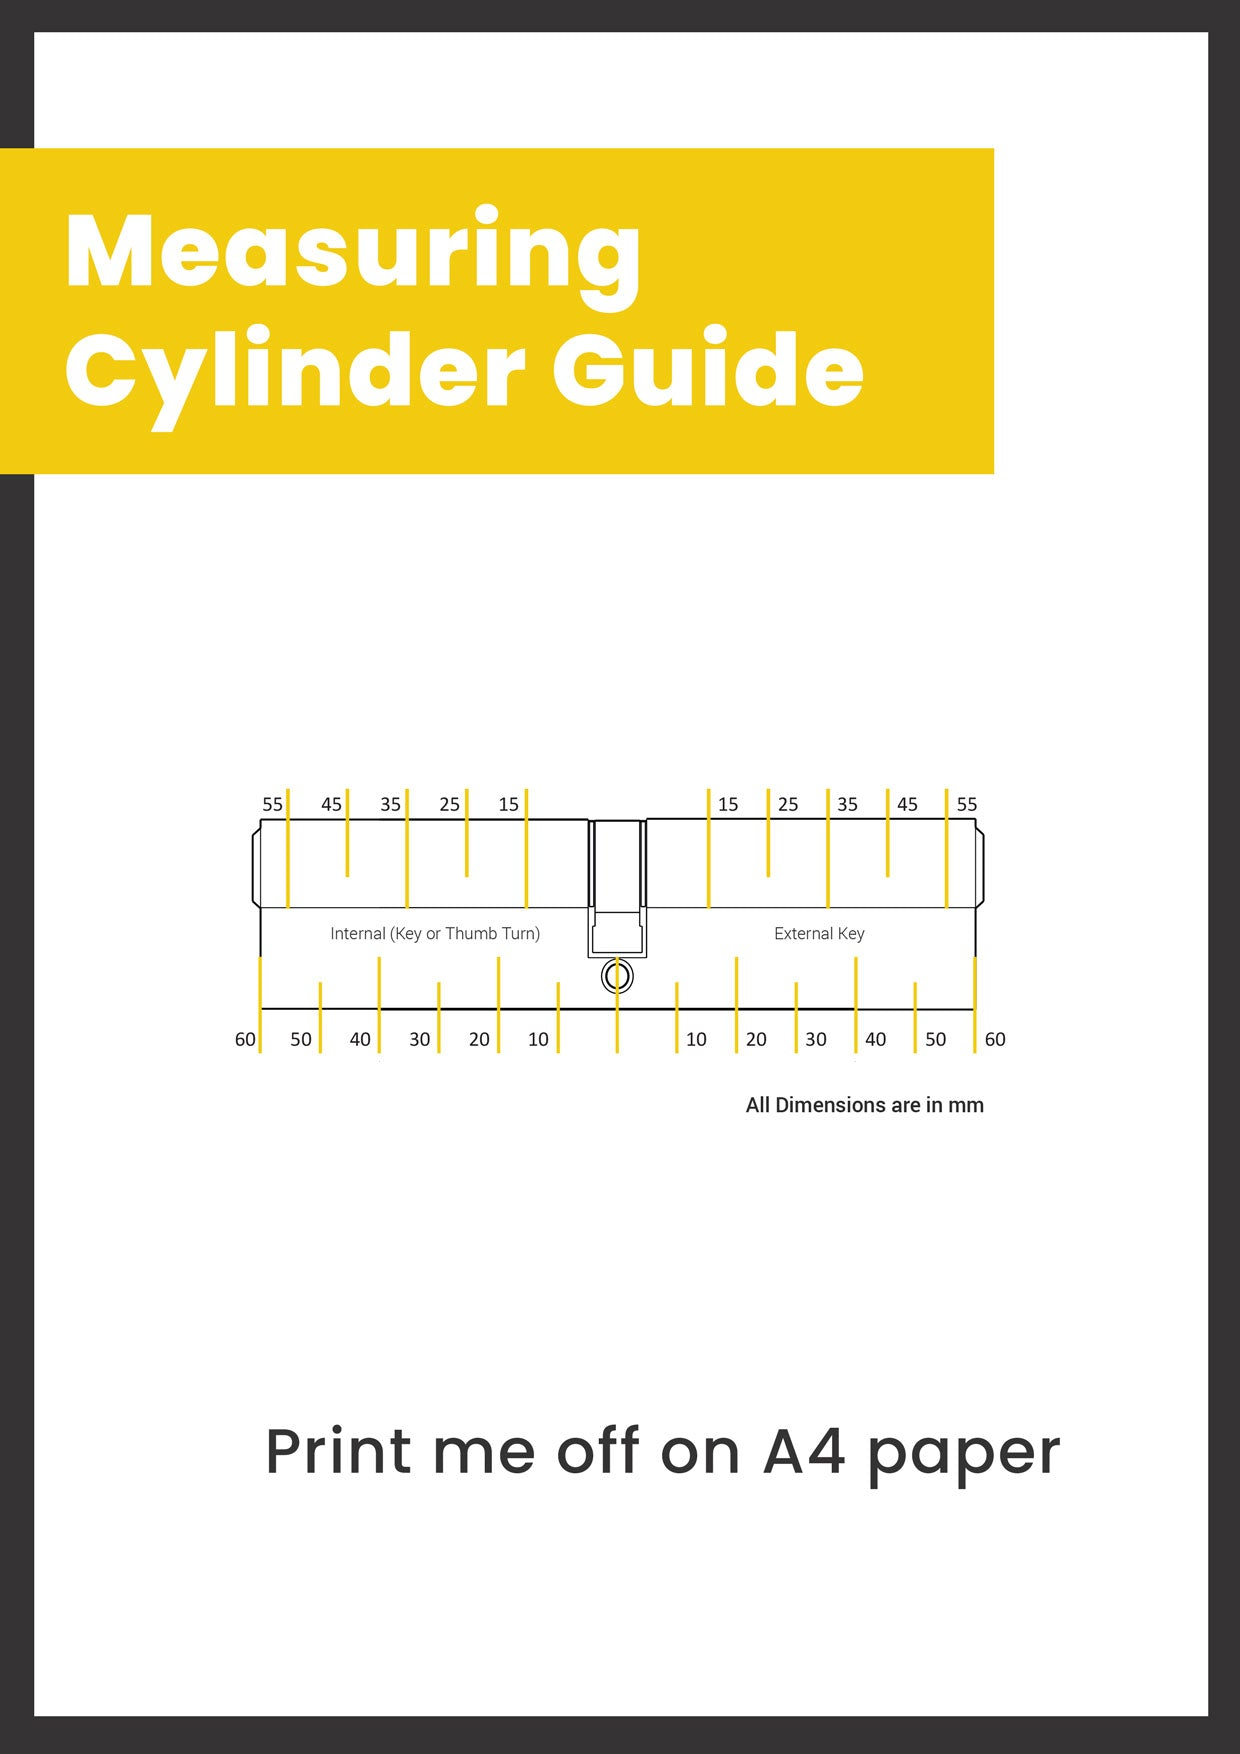 Measuring Cylinder Guide - A4 print off